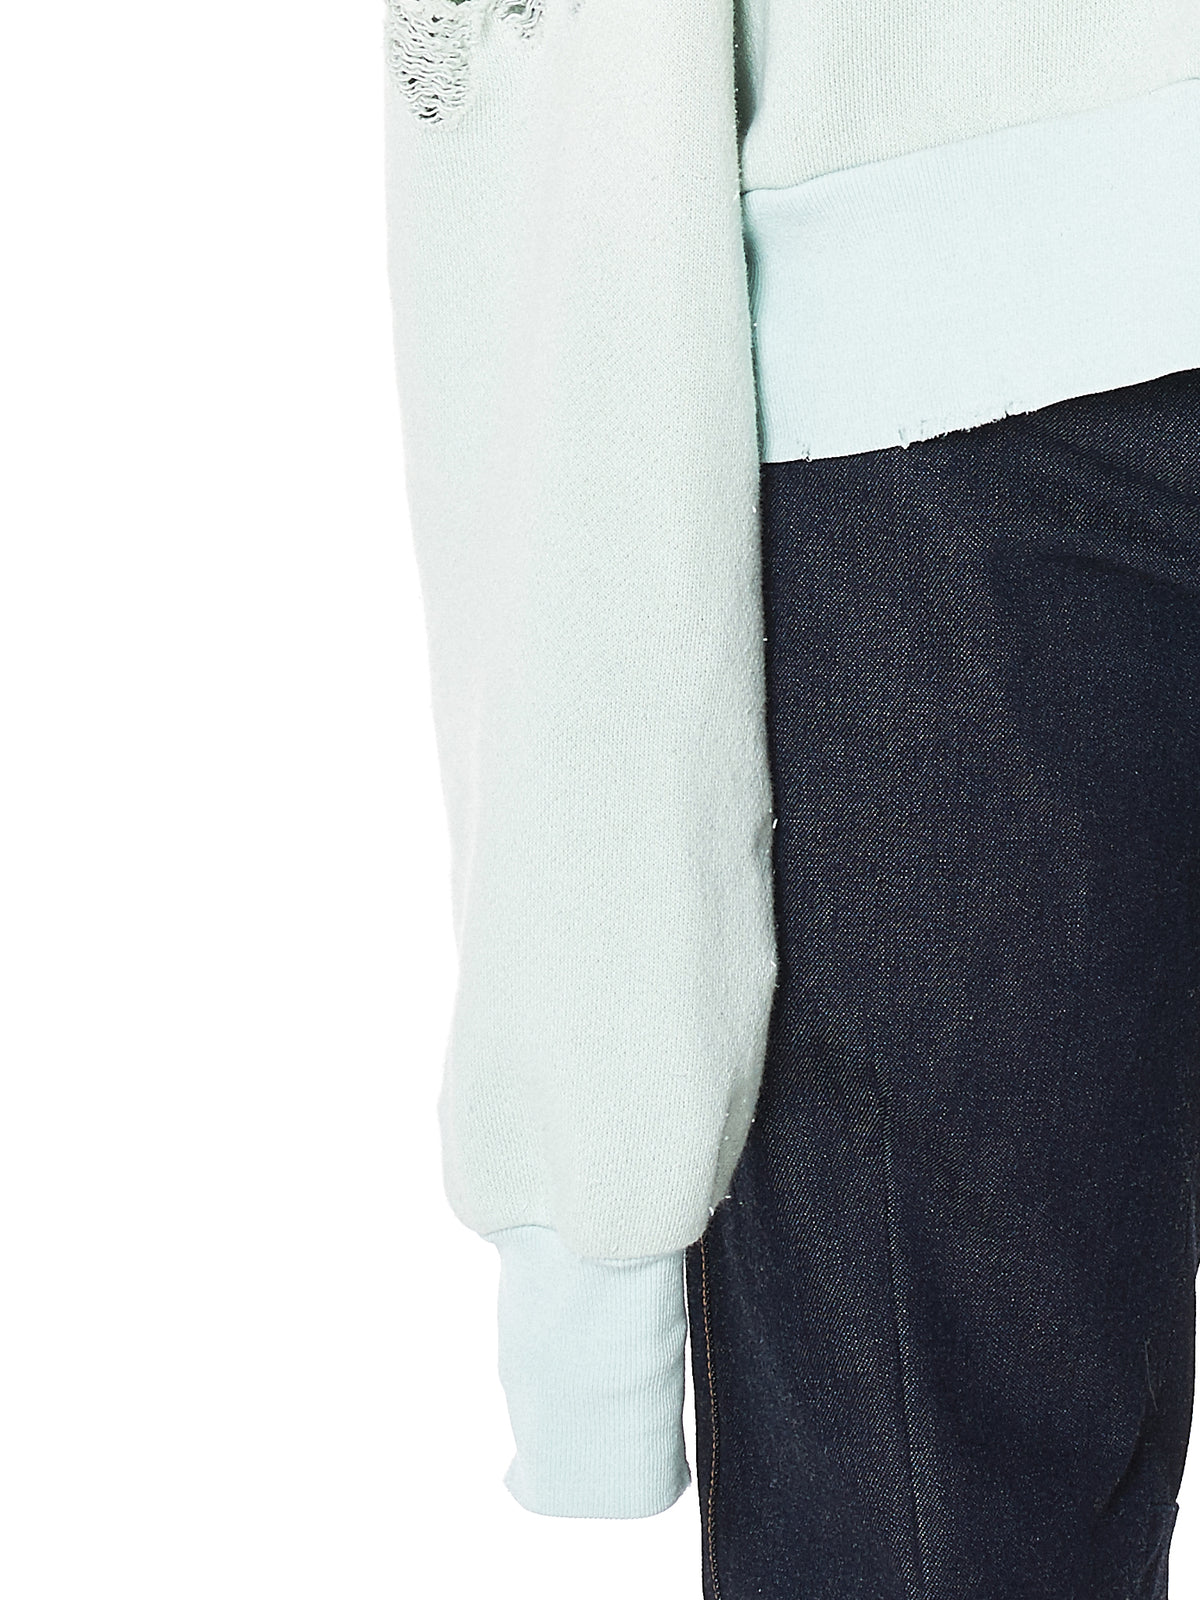 Unravel Distressed Pullover - Hlorenzo Detail 2